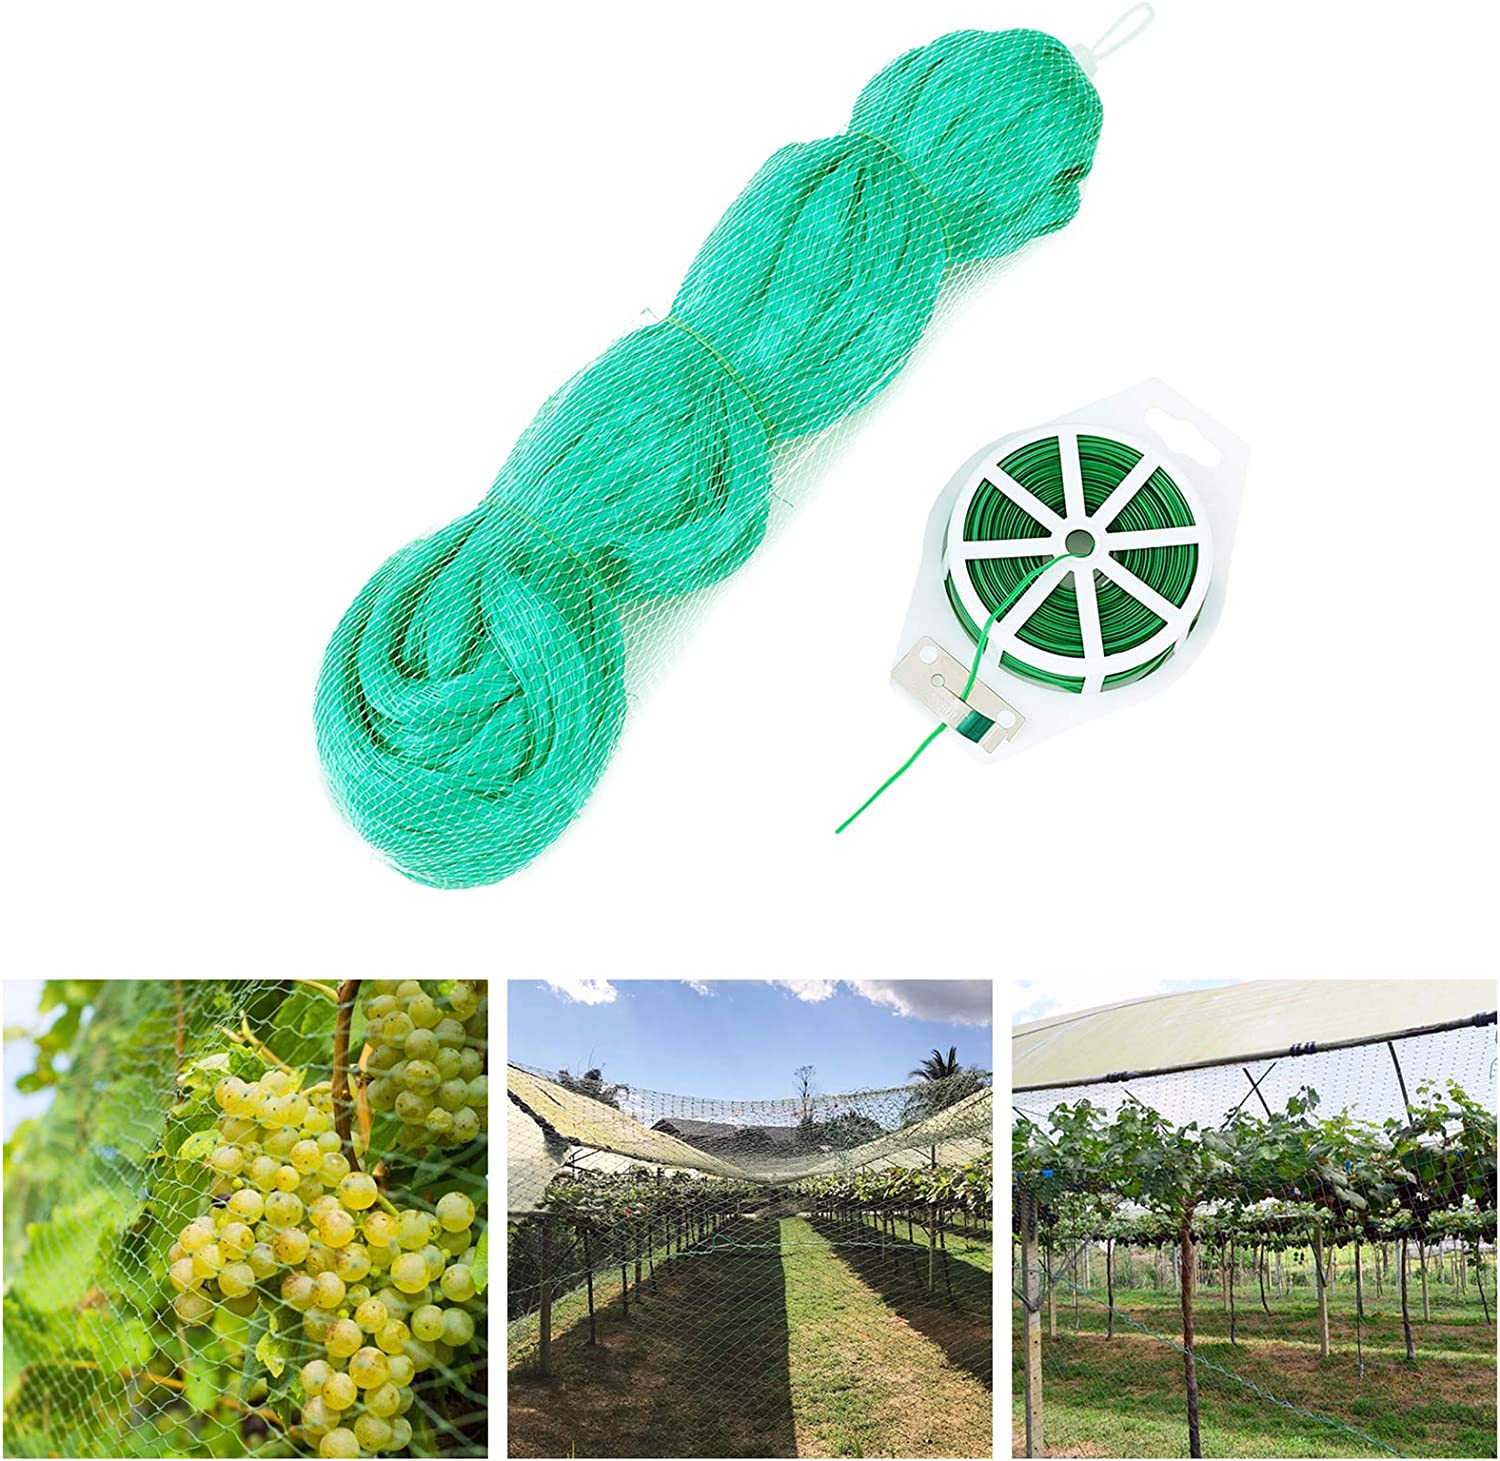 Bldaxn Green Anti Bird Netting Garden Protection Mesh Netting Reusable Protective Garden Netting for Plants Fruit Trees Against Birds,Deer and Other Animals,Netting Fence 13Ft x 50Ft